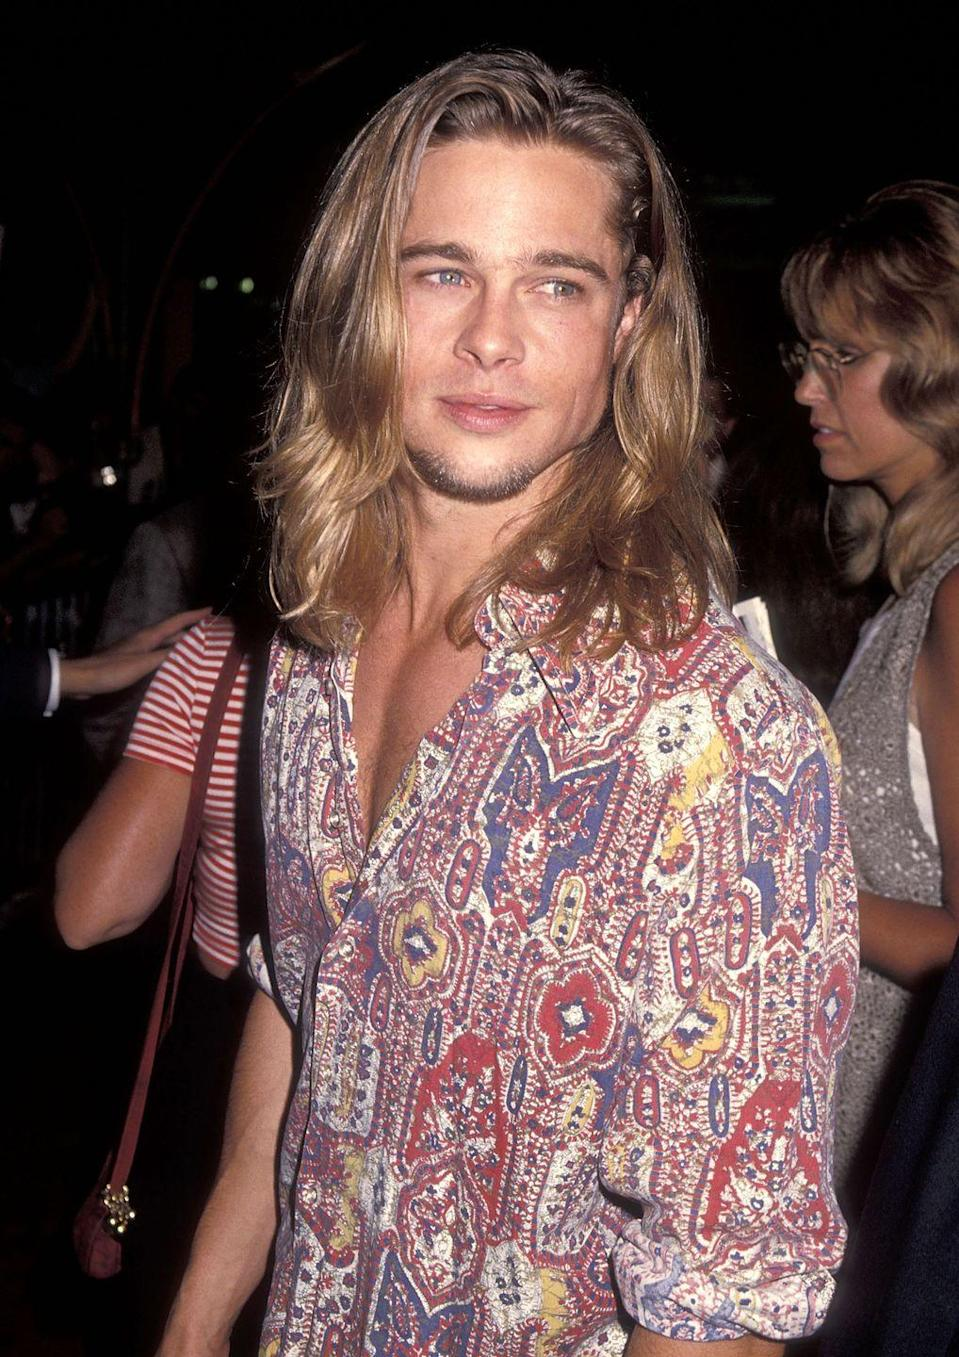 <p>One of Pitt's most notable features in his early heartthrob days was his hair, despite its often-changing color and style.</p>